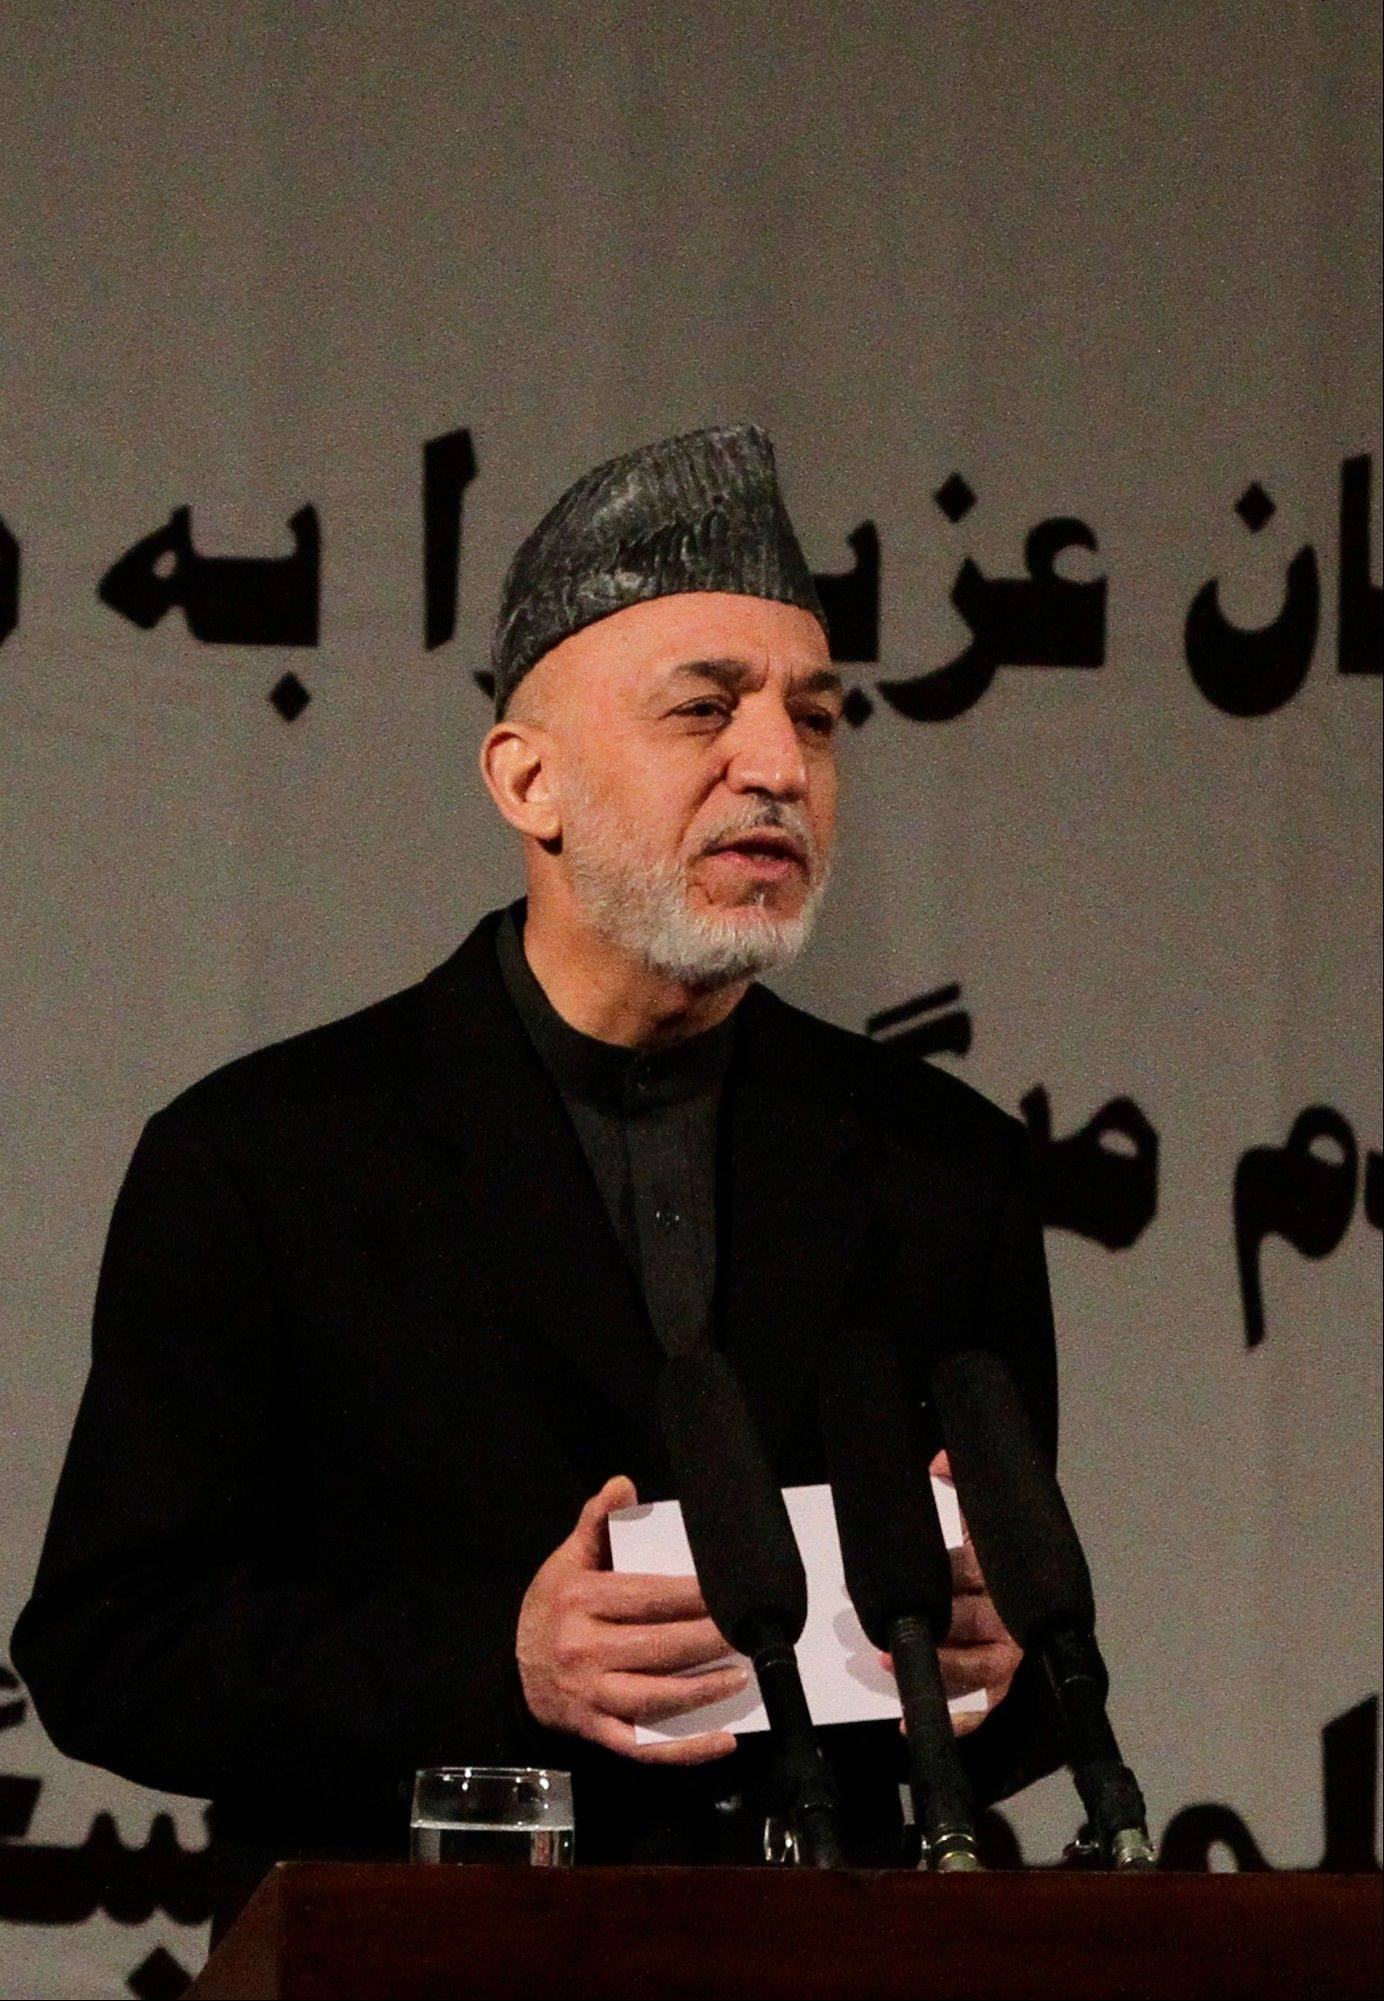 Afghan President Hamid Karzai on Sunday accused the Taliban and the U.S. of working in concert to convince Afghans that violence will worsen if most foreign troops leave as planned by the end of next year.